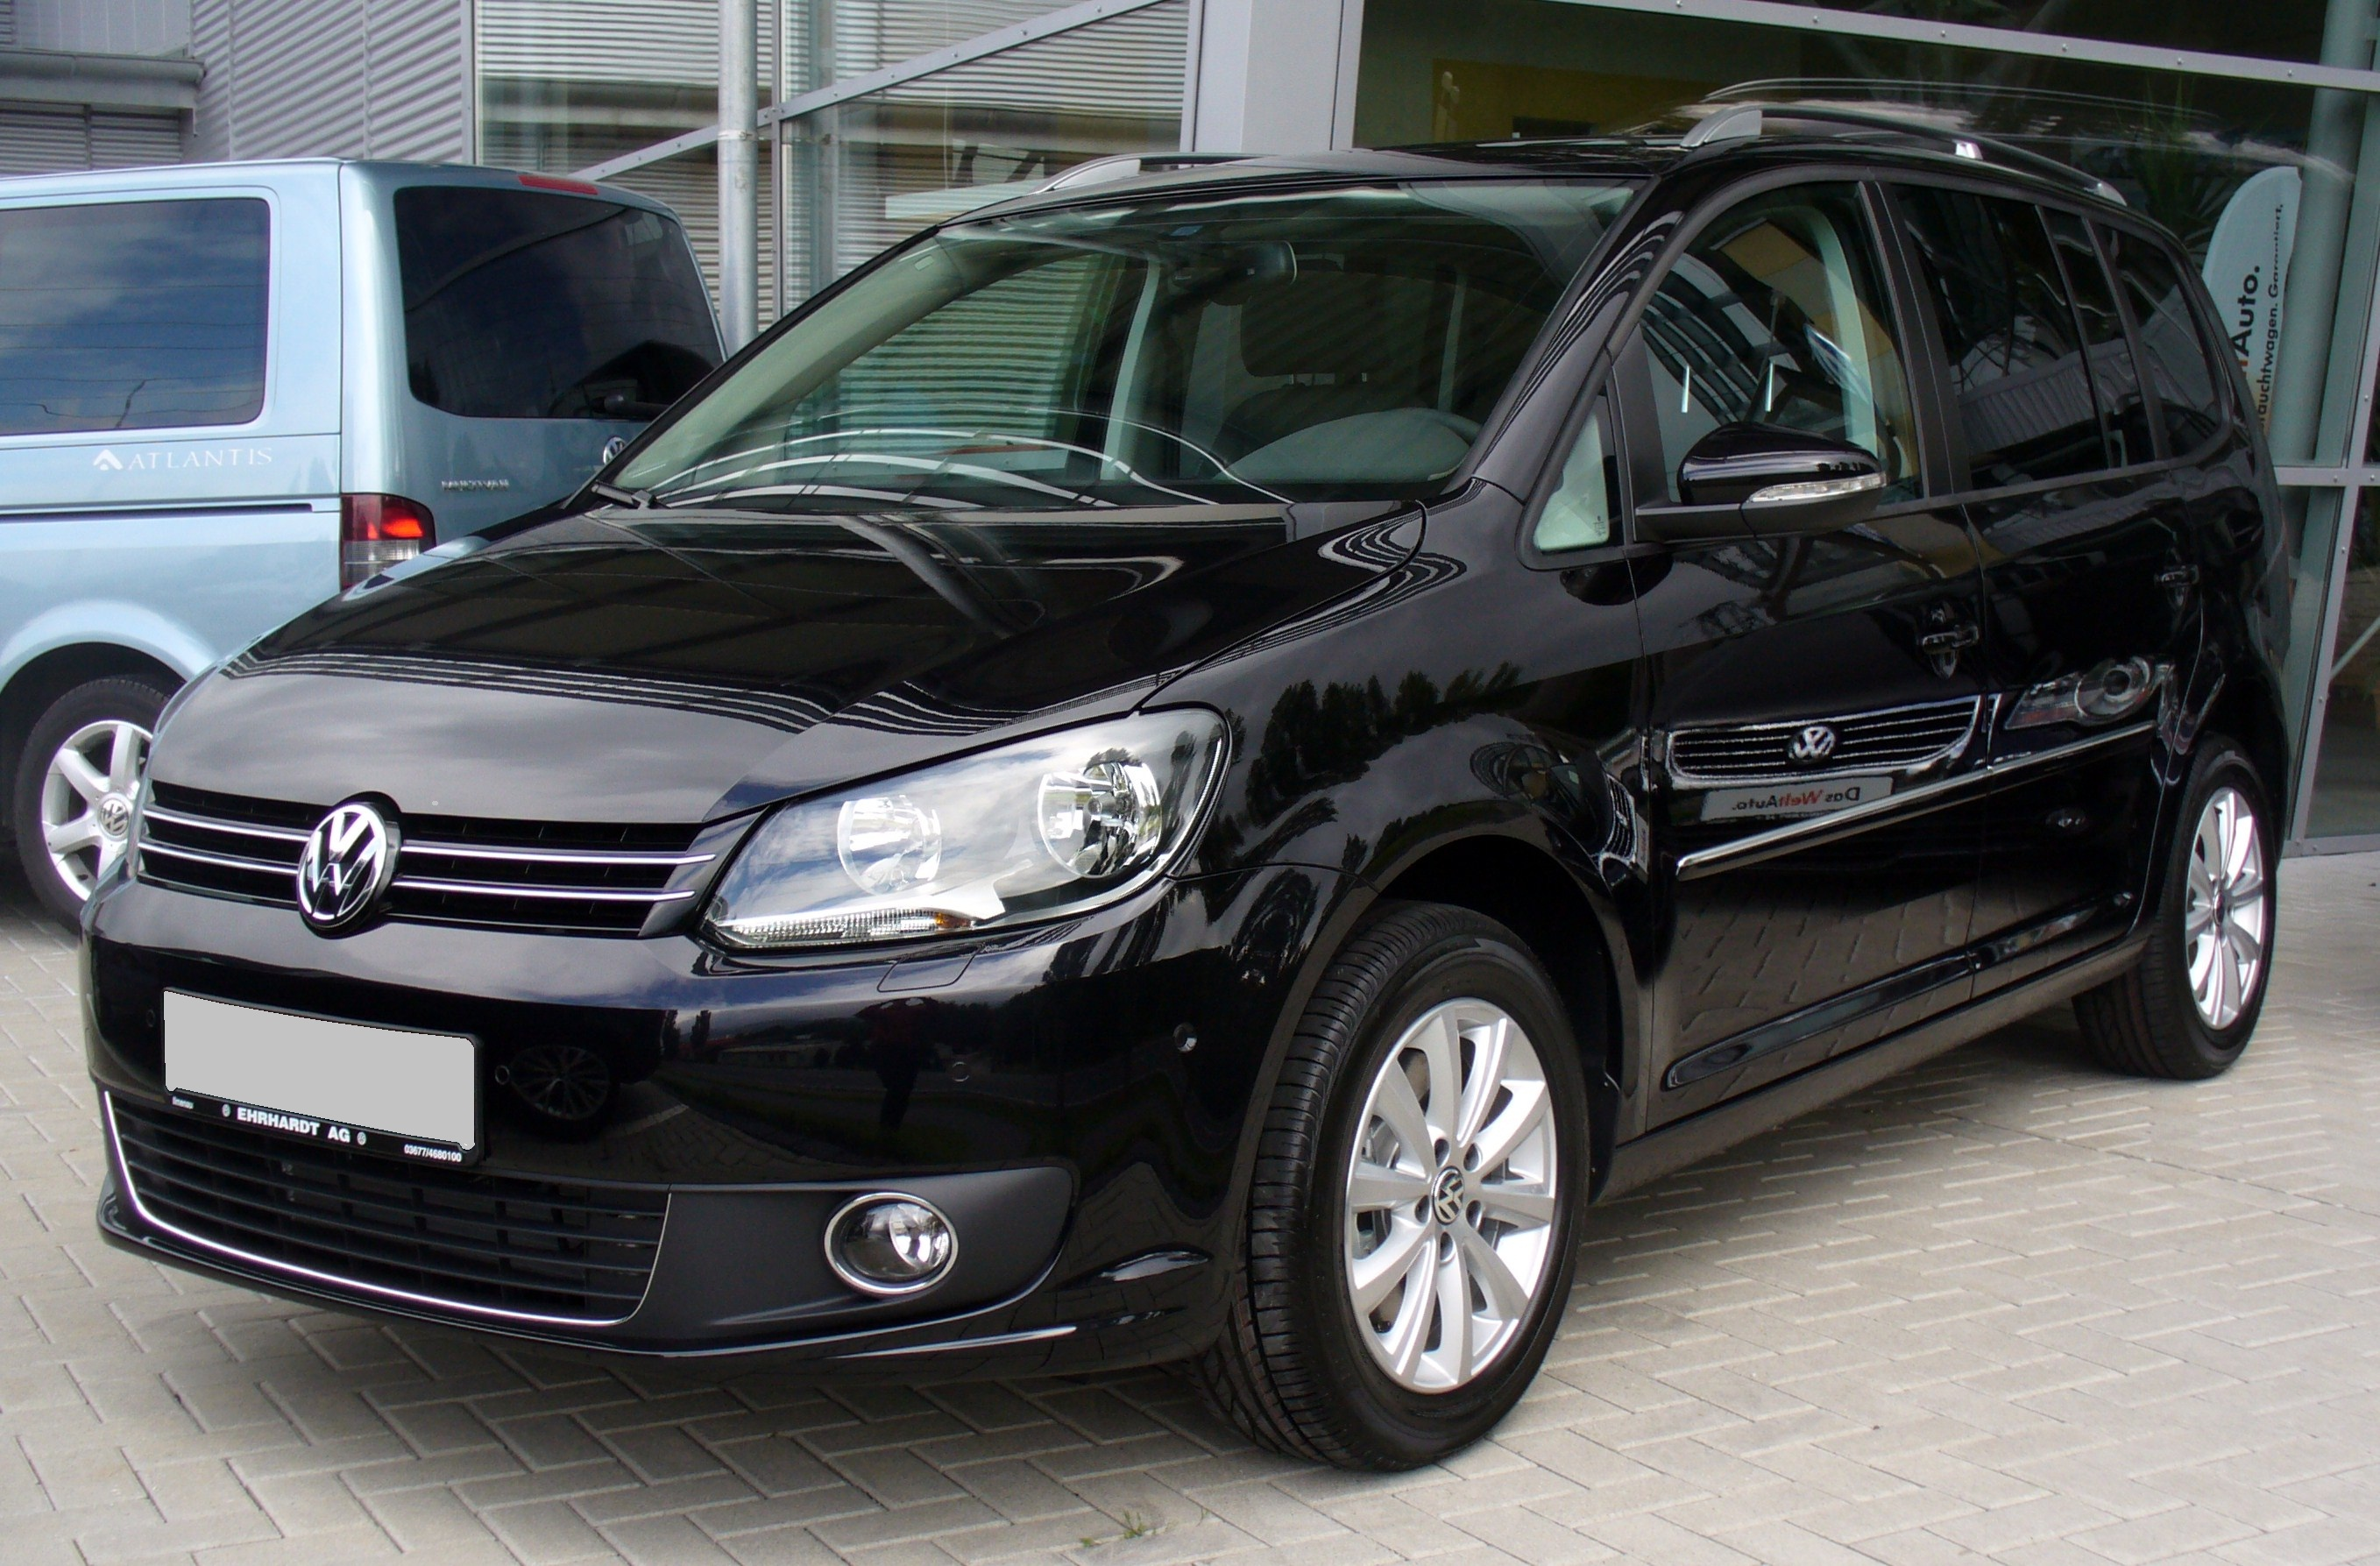 File Vw Touran Facelift 2010 2 0 Tdi Deep Black Jpg